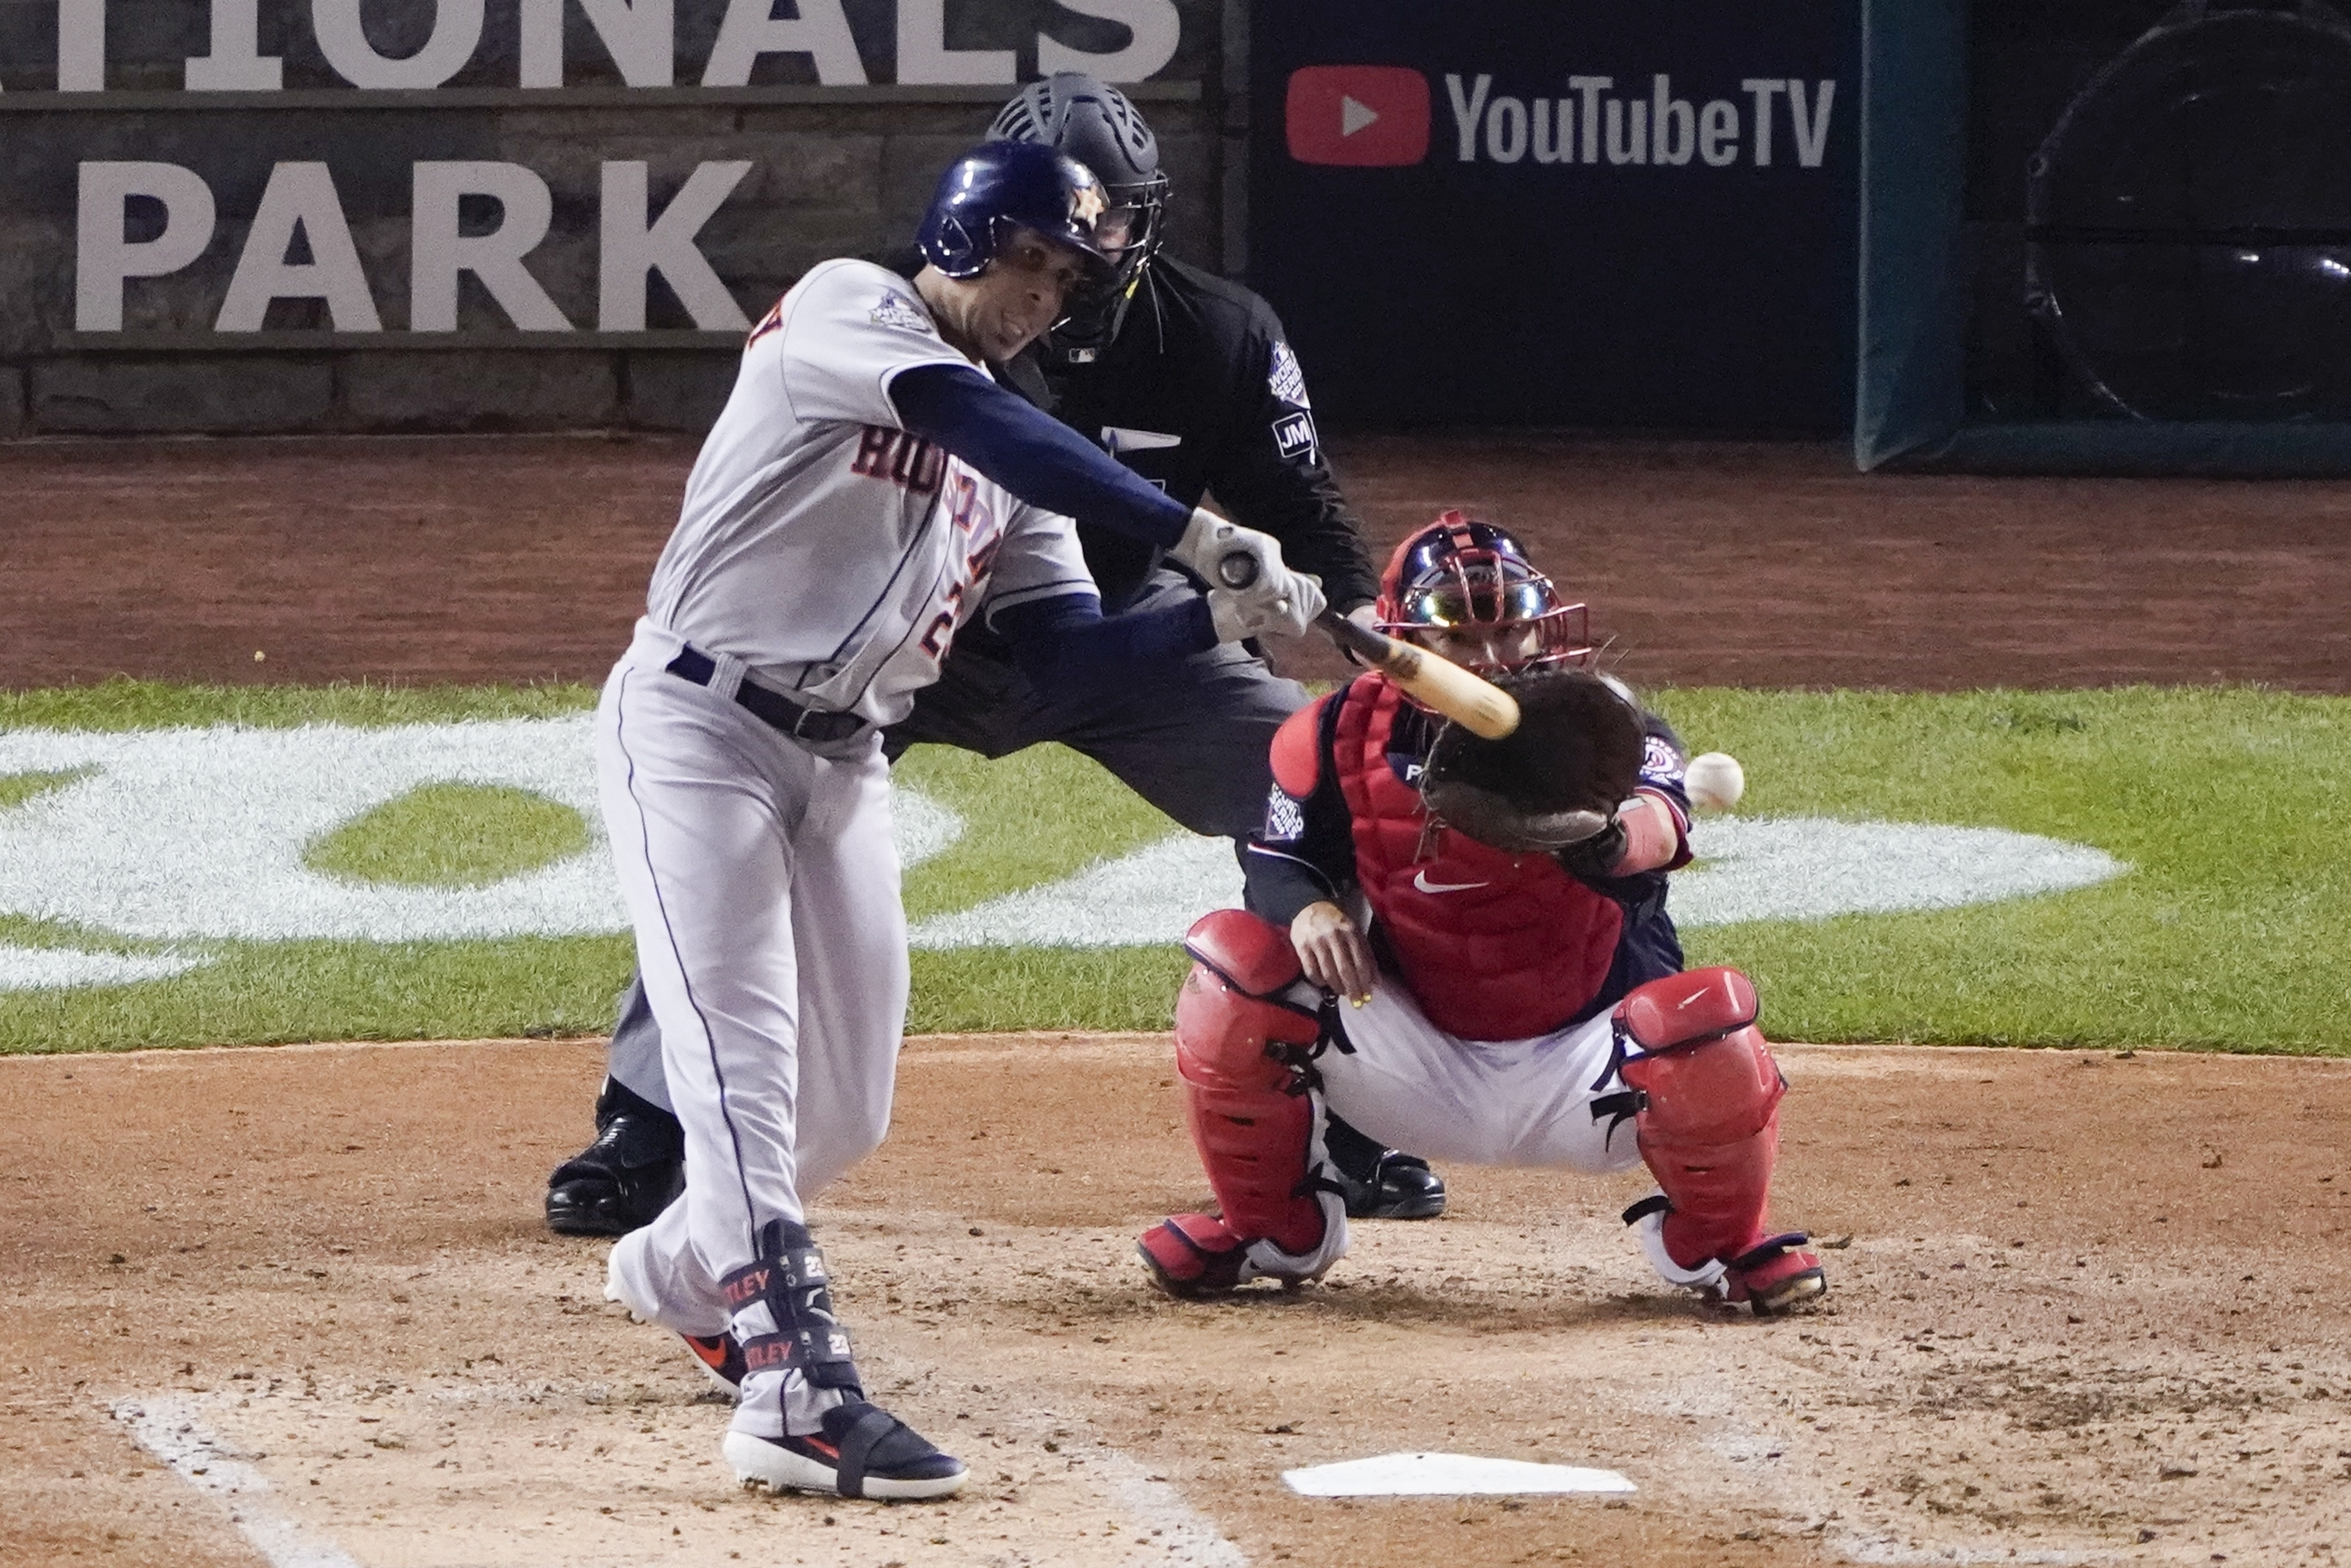 Brantley's big hits help Astros win Game 3 of World Series